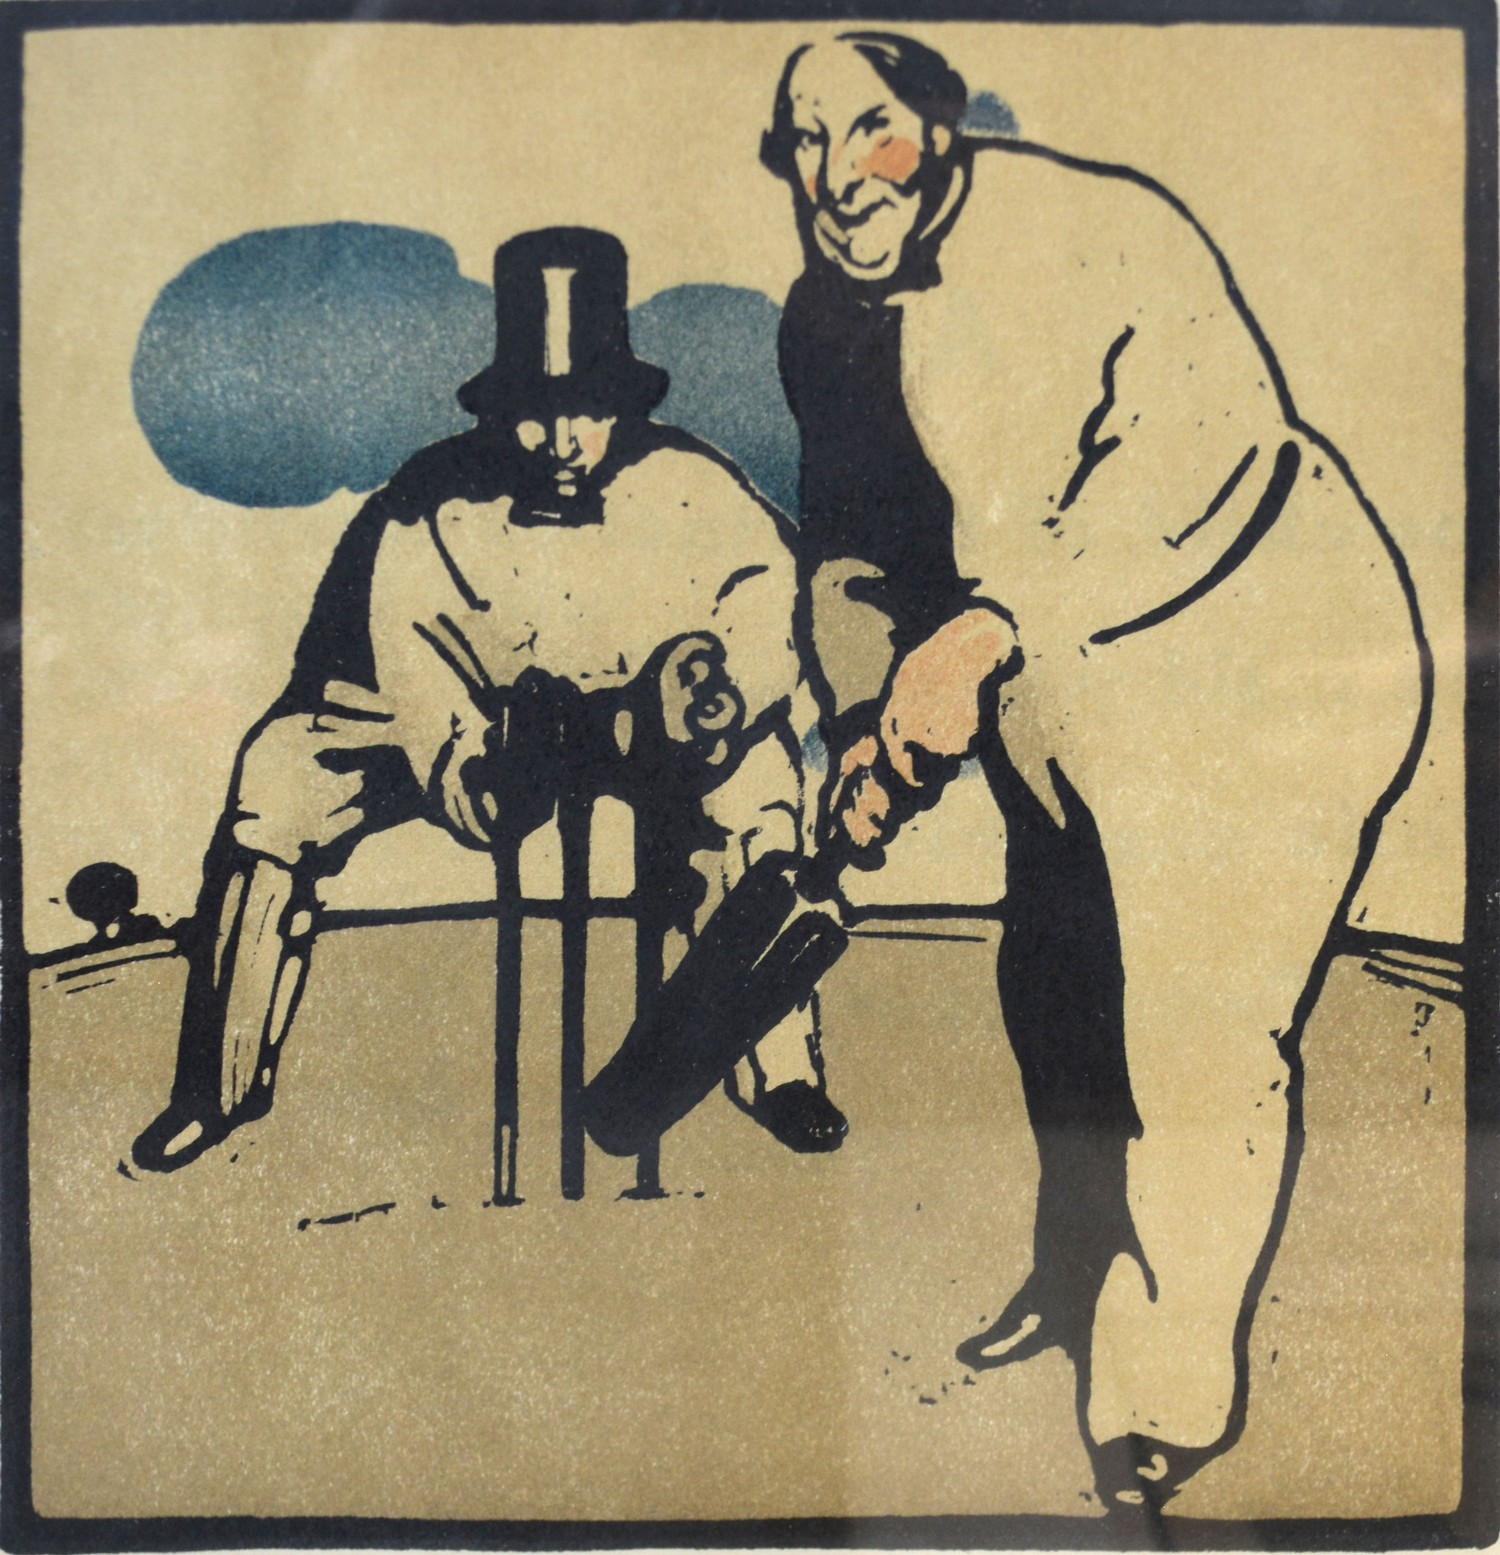 Sir William Nicholson A Group of Three Lithographs from The Almanac of Twelve Sports to include Golf - Image 2 of 4